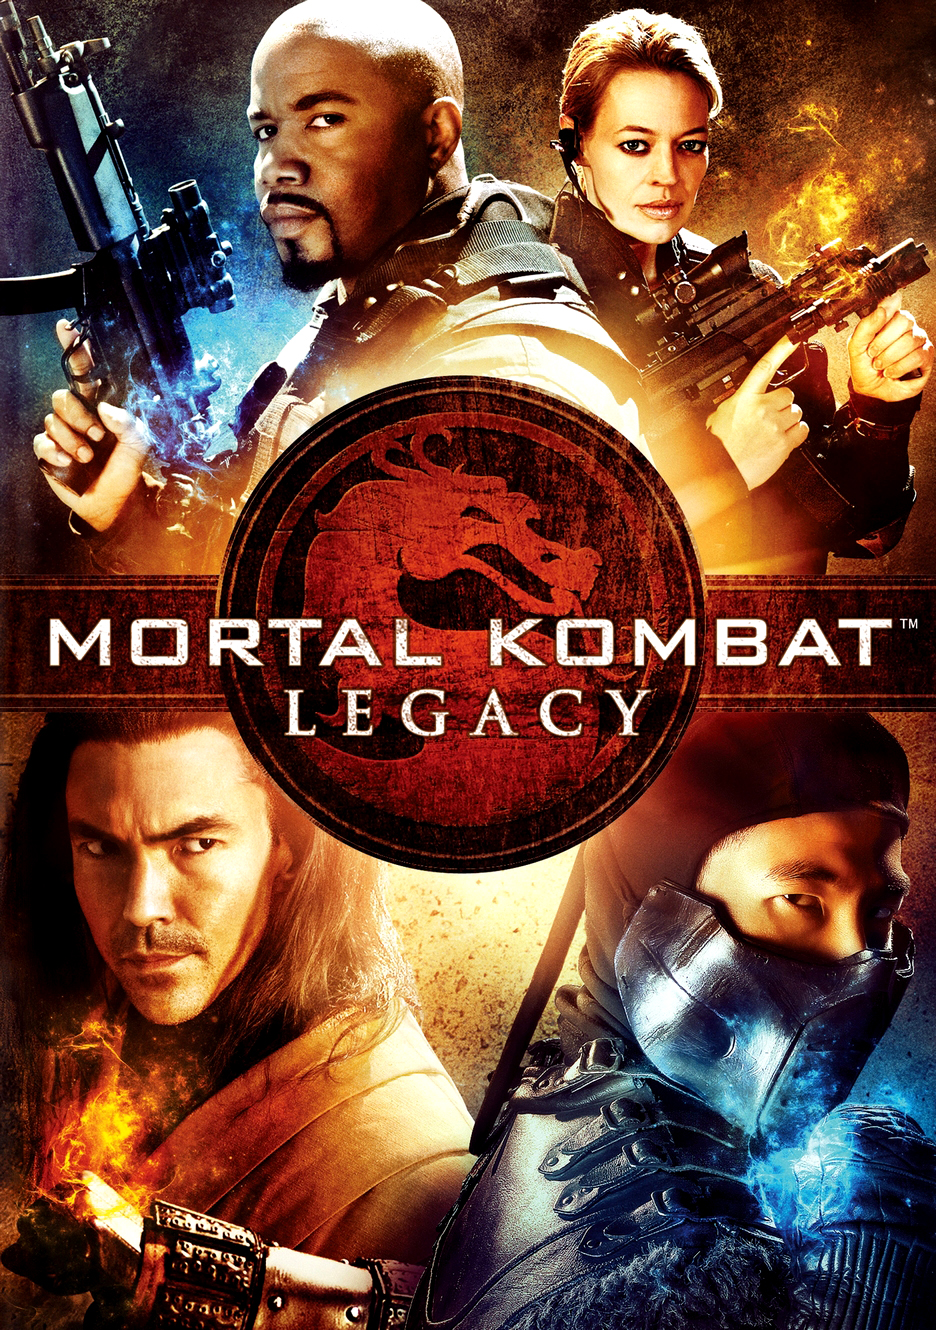 Mortal Kombat: Legacy (2011) ταινιες online seires oipeirates greek subs